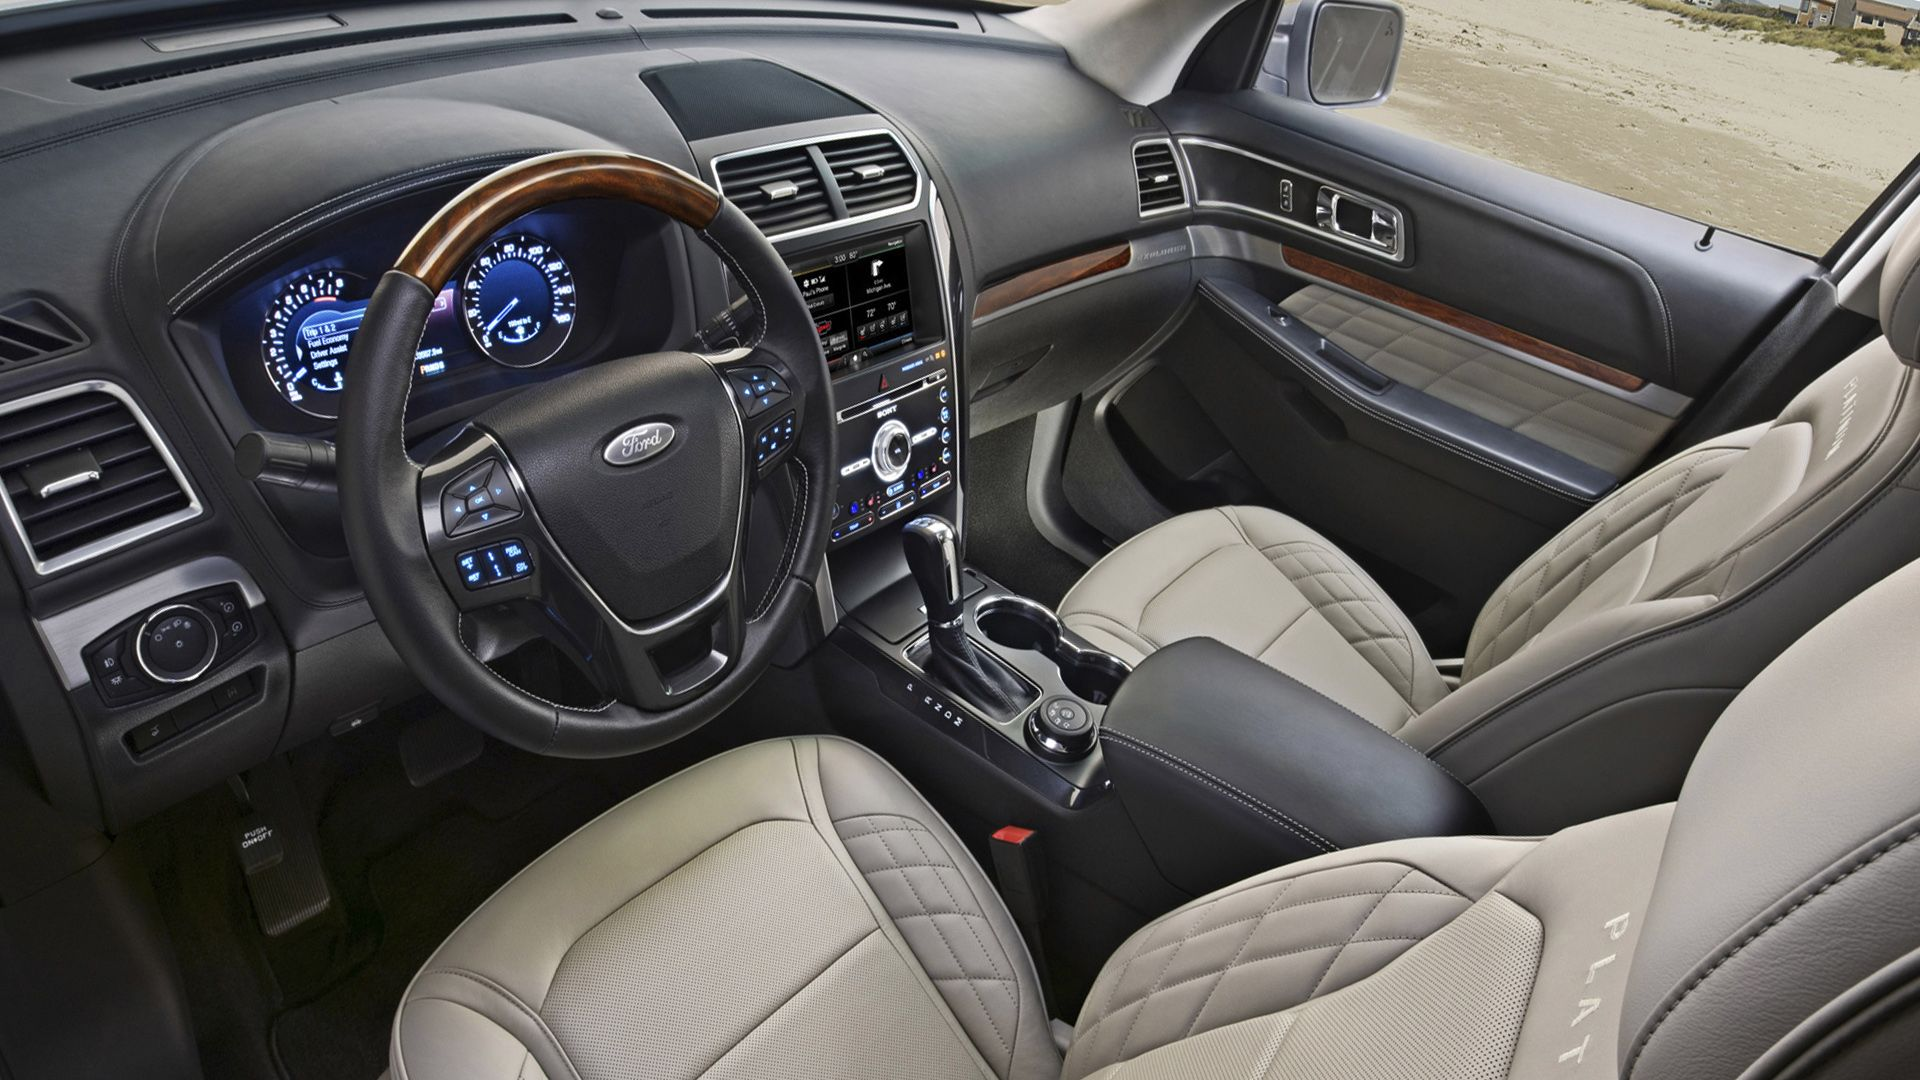 2019 Ford Explorer Interior and Technology